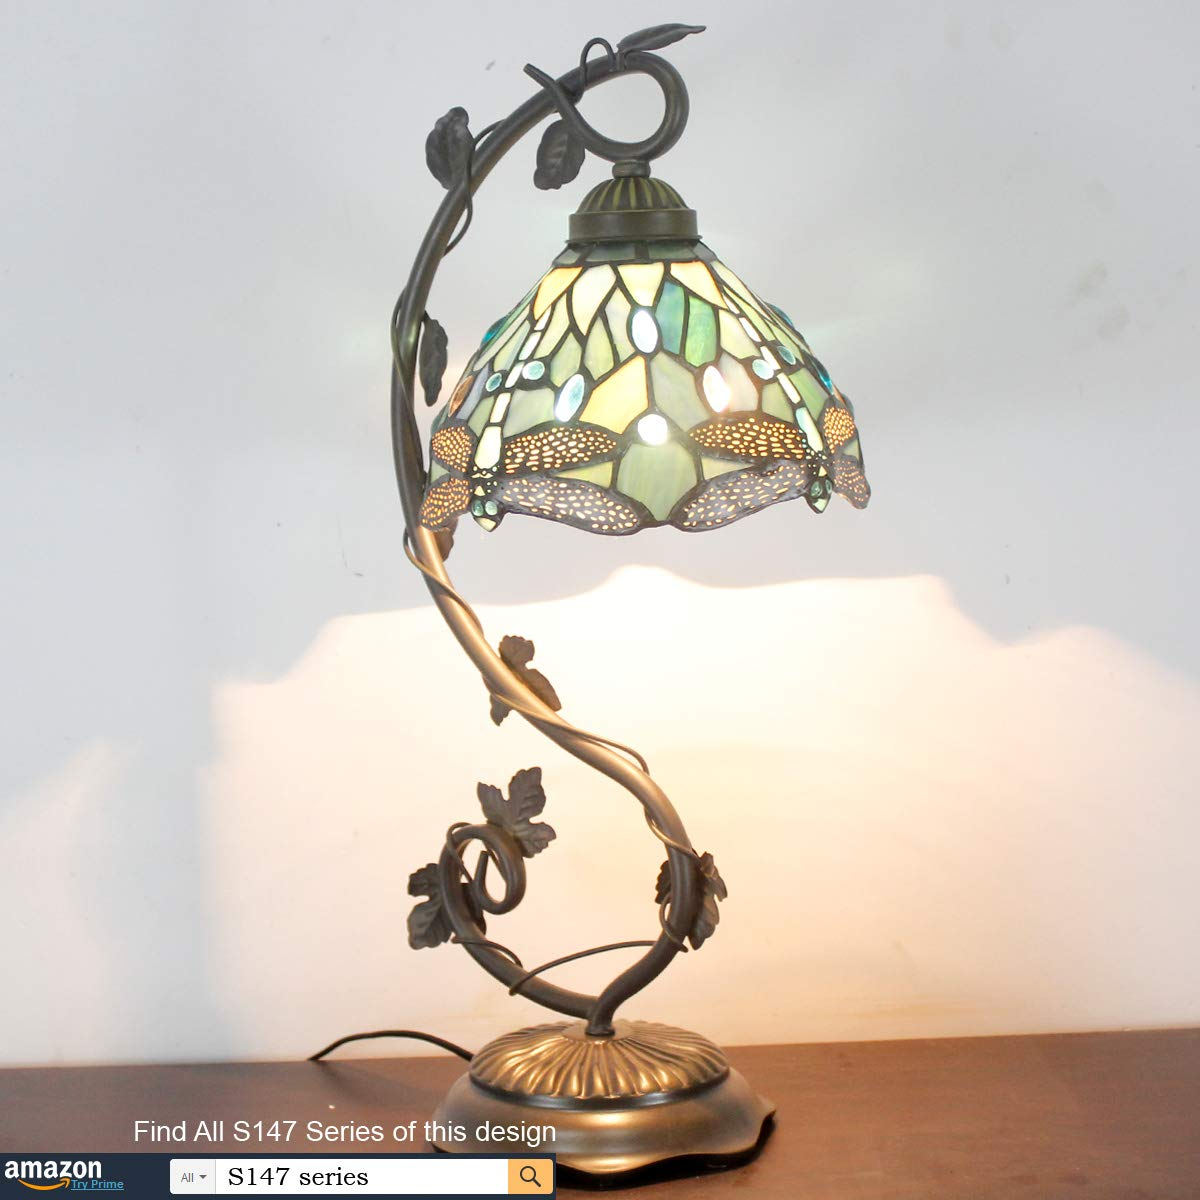 Tiffany Lamps Stained Glass Table Desk Reading Lamp Crystal Bead Sea Blue Dragonfly Style Shade W8H22 Inch for Living Room Bedroom Bookcase Dresser Coffee Table S147 WERFACTORY by WERFACTORY (Image #5)